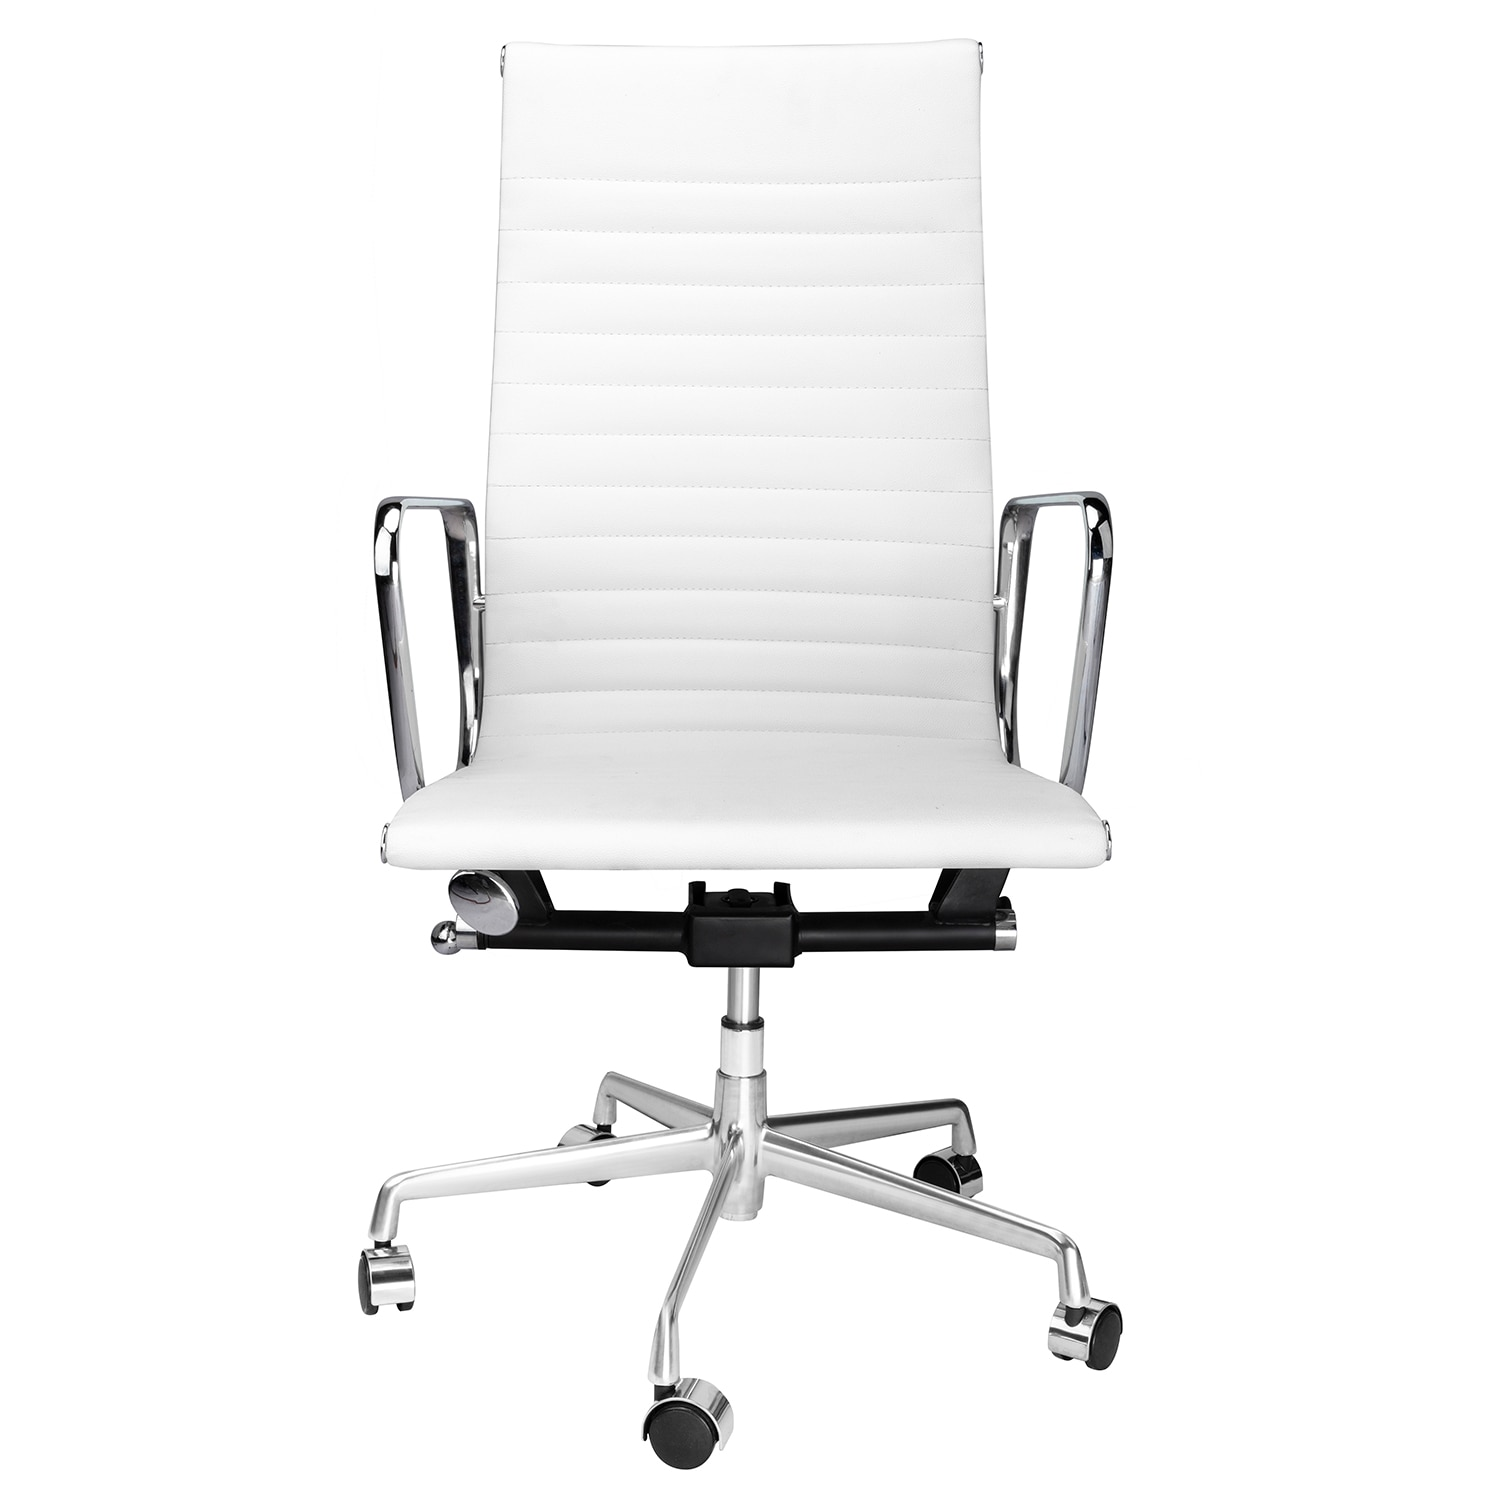 H8b57829979894b97af223d5642429f68I - High Back Aluminium Group Office Chair Replica Swivel Chair with Armrests Chromed Base Gaming Chair for Office Meeting Room